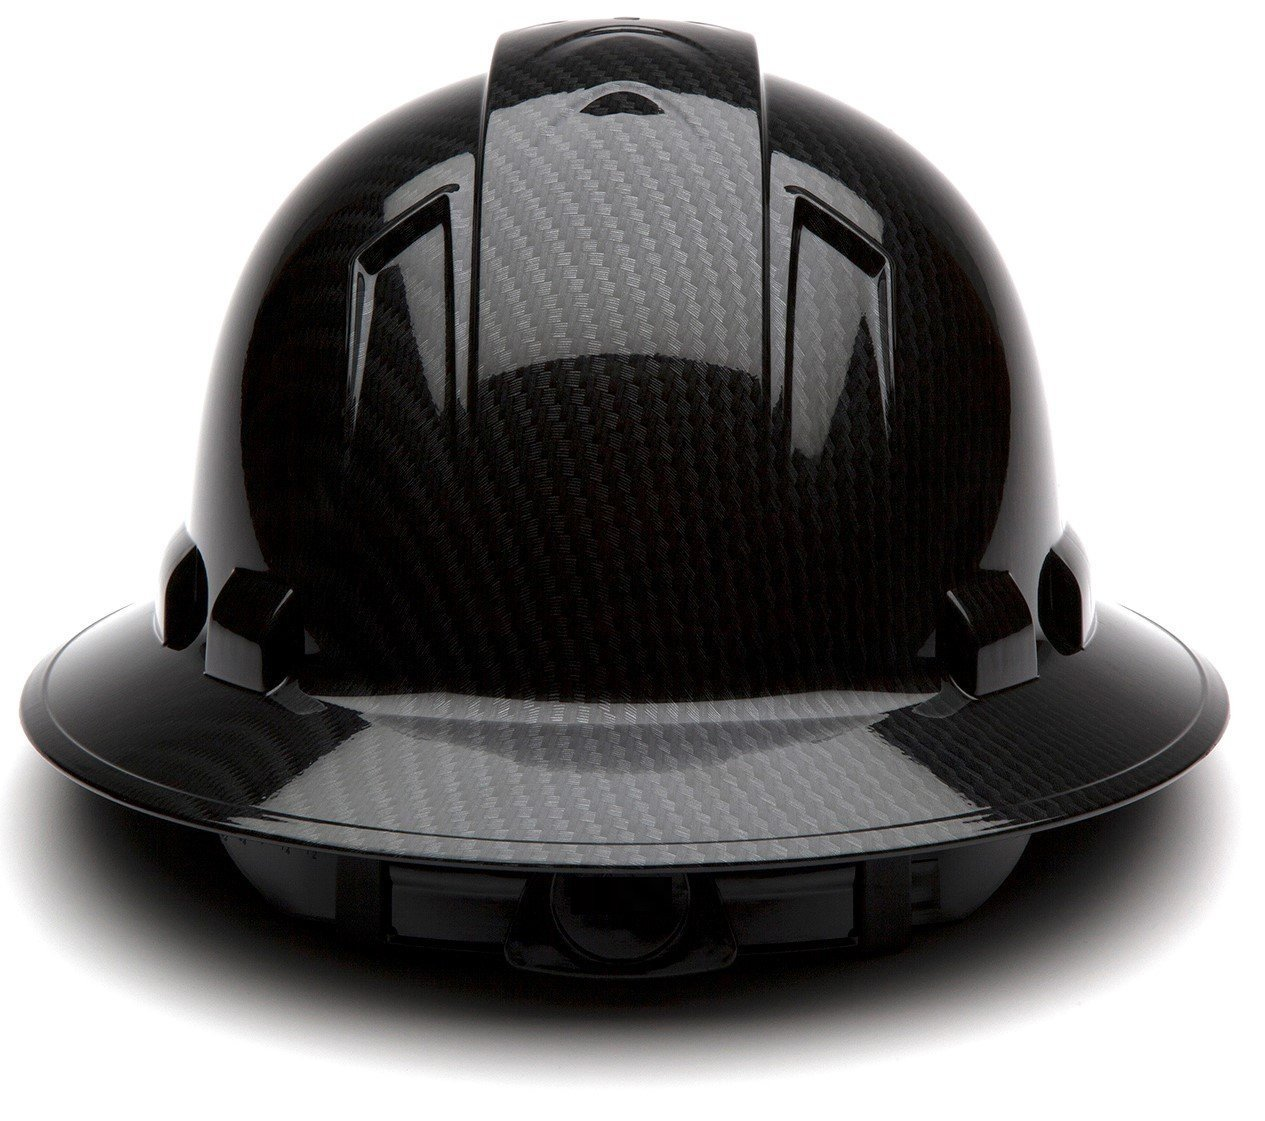 Pyramex Full Brim Hard Hat with Standard Ratchet Suspension Color Shiny Black by Pyramex (Image #3)